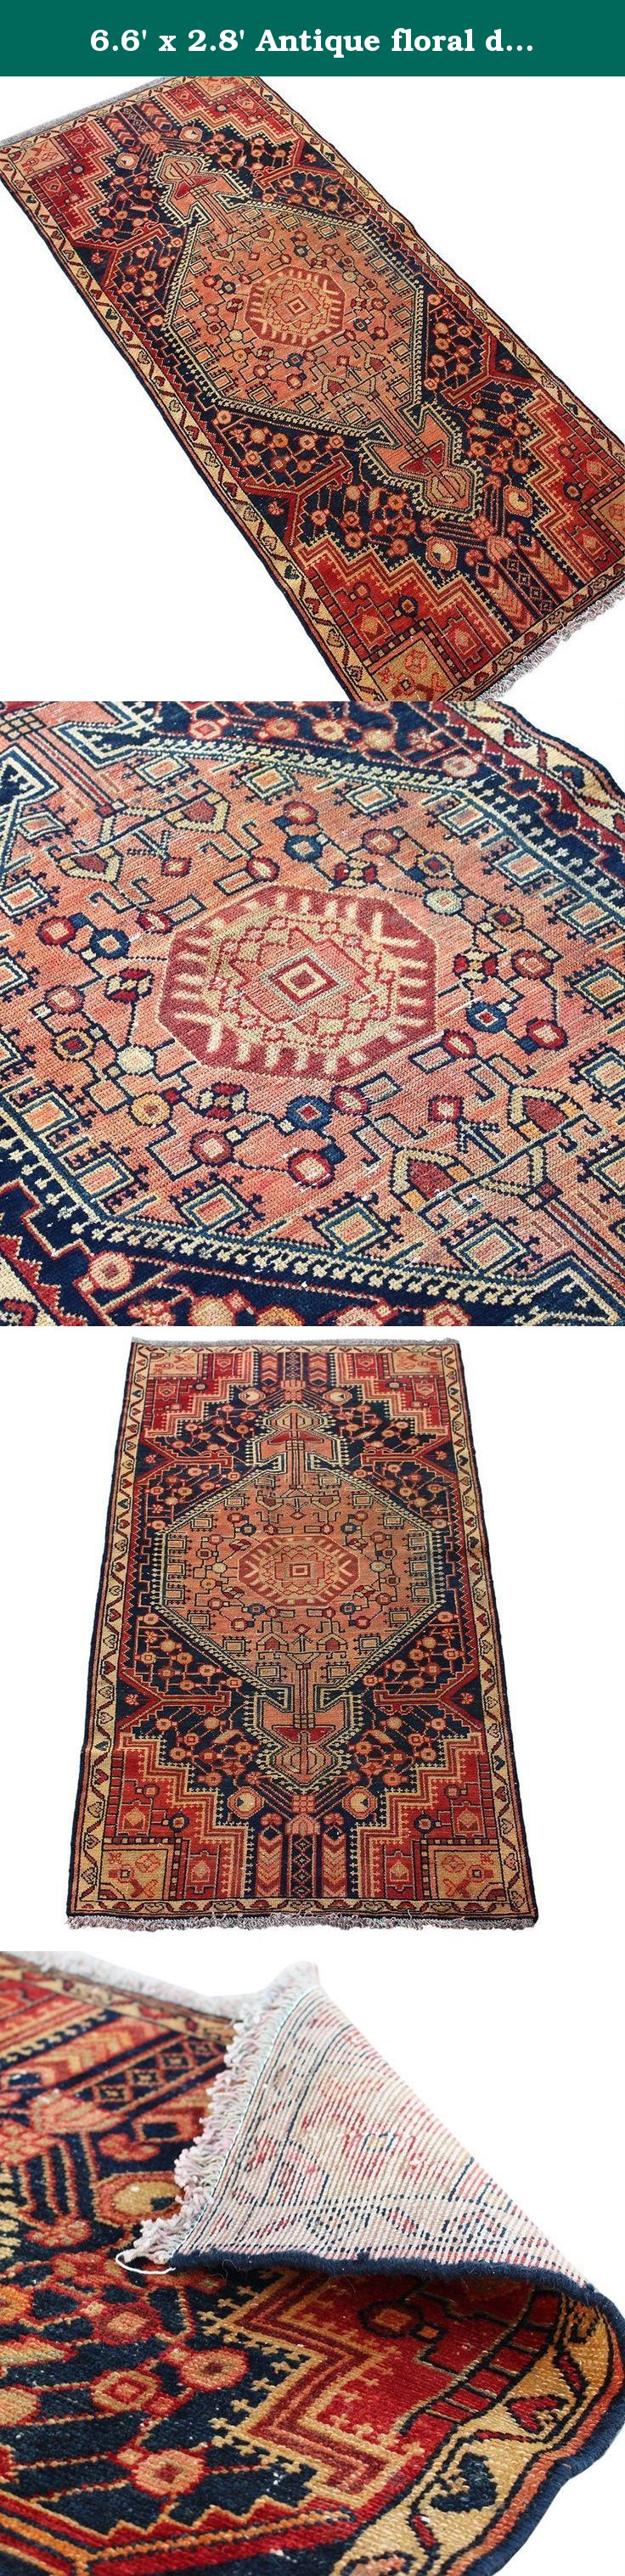 6.6' x 2.8' Antique floral design runner rug, Vintage traditional runner carpet, Floor Classy Kilim Carpet, Classical Fancy Handmade Rug, Red Turkish Rug.Code R0101690. Hand woven rug which comes from pure lamb wool sheared at the Beginning of spring and a mixture of organic colors. It would brighten up your place with its attractive color. need to need to mention being free of any chemical colors. Size: 6.6' x 2.8' Weight: 17 LB Product's code: R0101690 As an advantages of years of being…